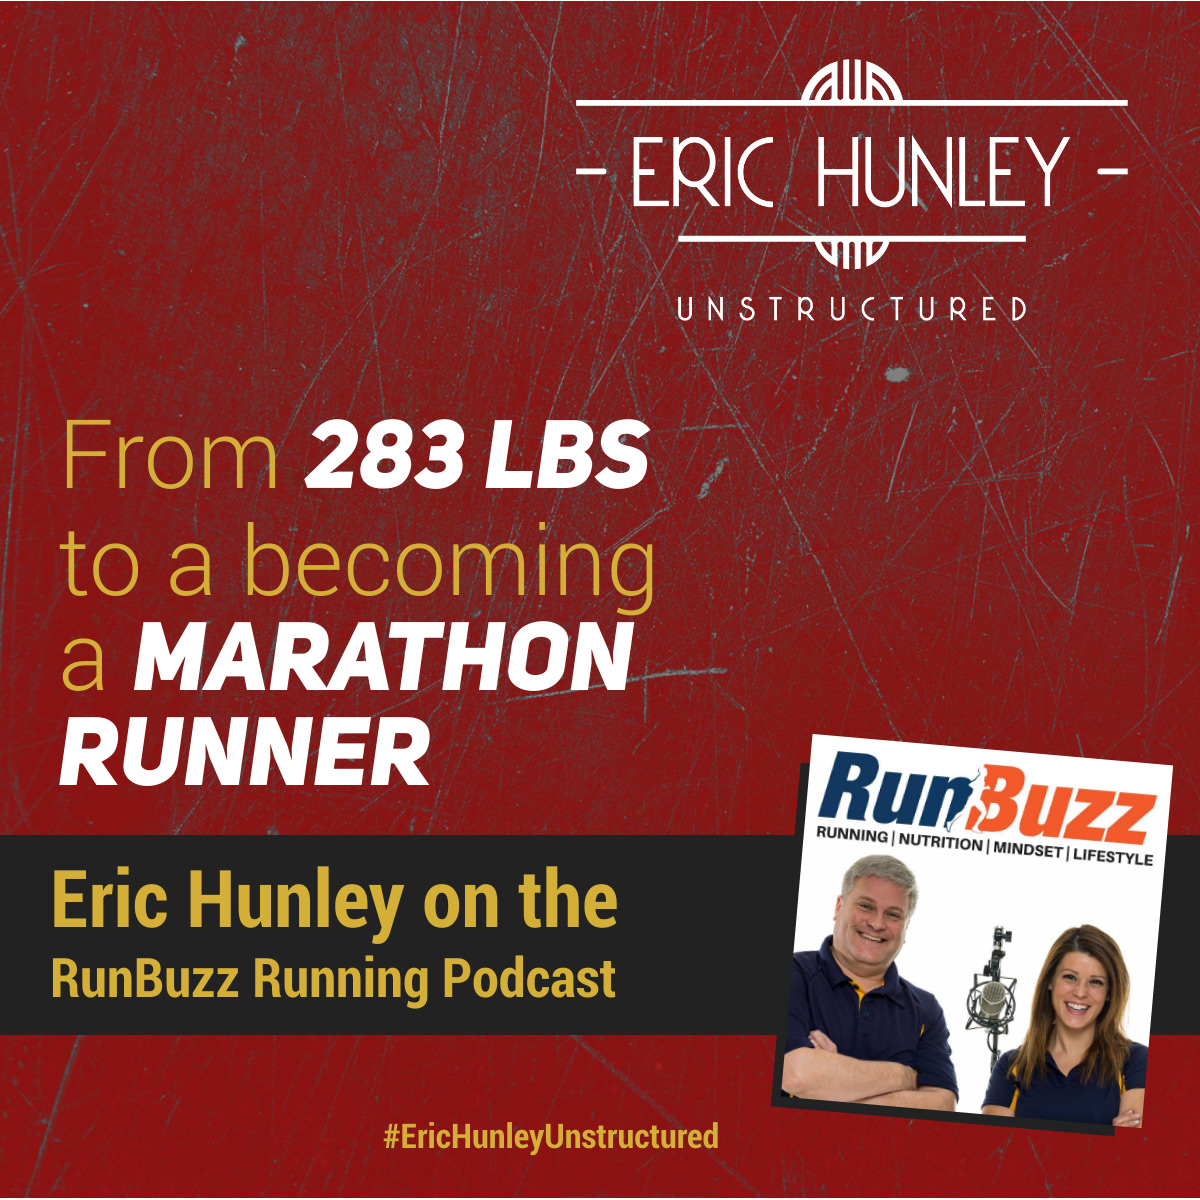 Eric Hunley Podcast Appearance Interviews - RunBuzz Running Podcast Square Post